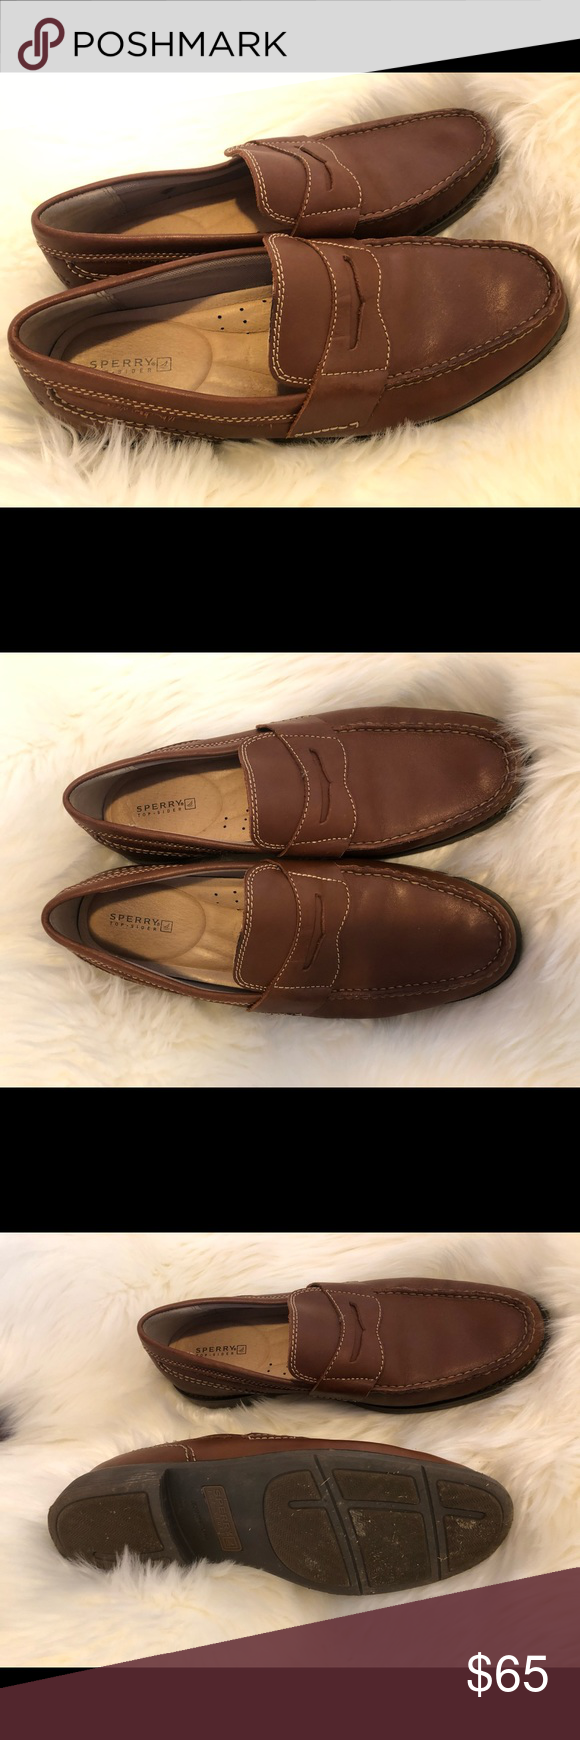 MENS SPERRY PENNY LOAFERS SIZE 11.5 GREAT CONDITION SPERRY Loafers- worn twice, size 11.5 no flaws Sperry Shoes Loafers & Slip-Ons #myposhpicks